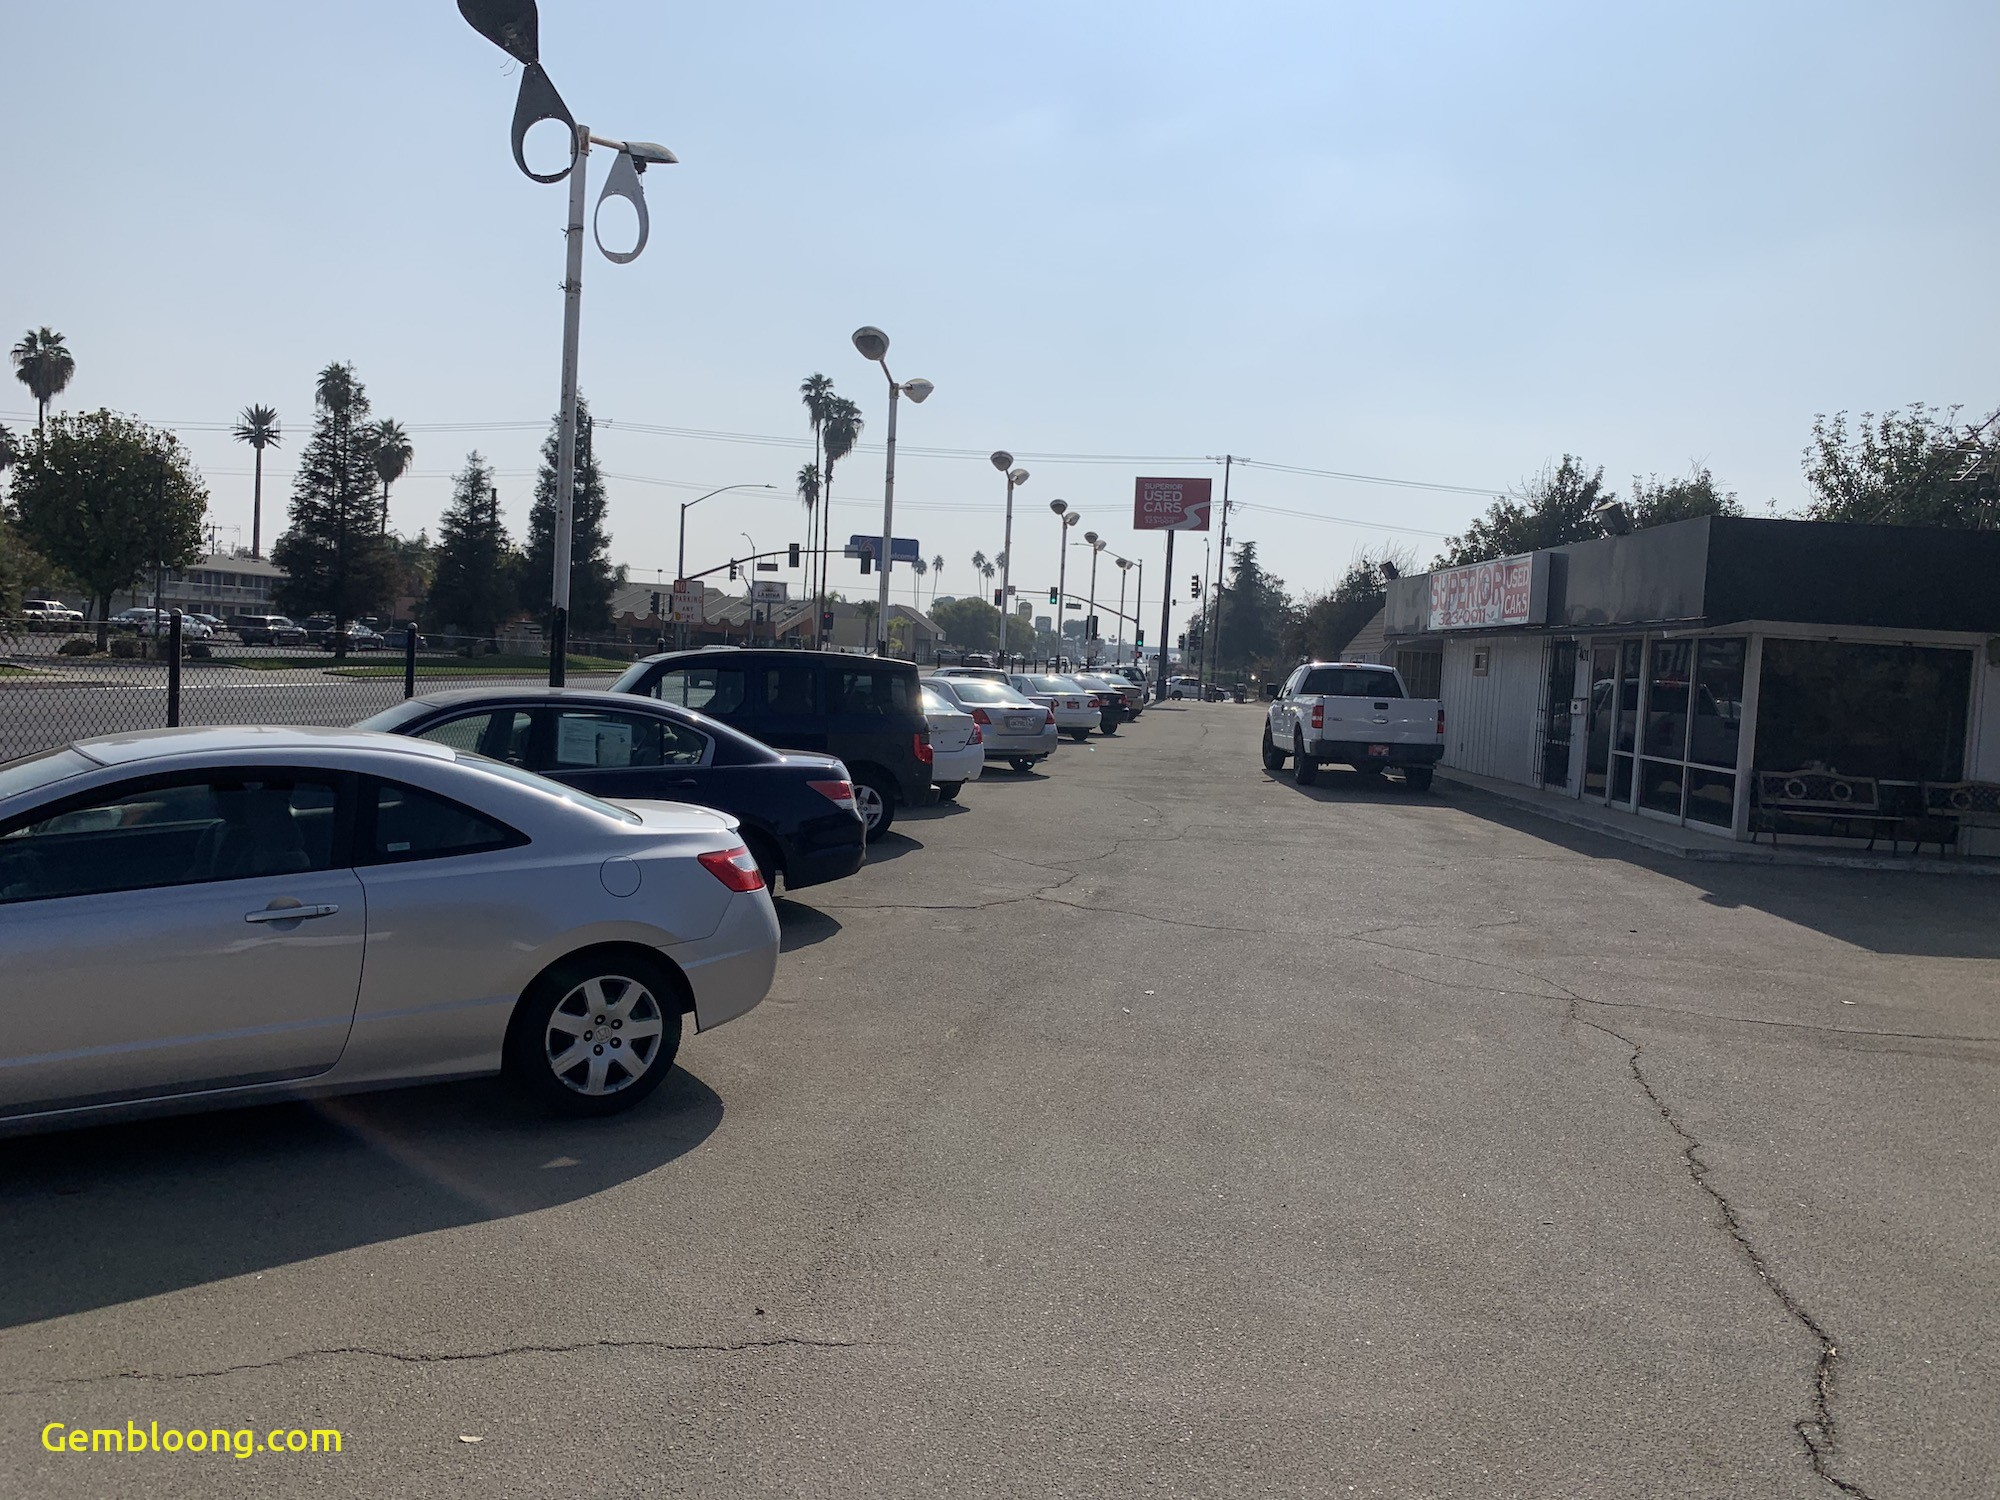 Used Cars Bakersfield Elegant Bakersfield Used Cars for Sale